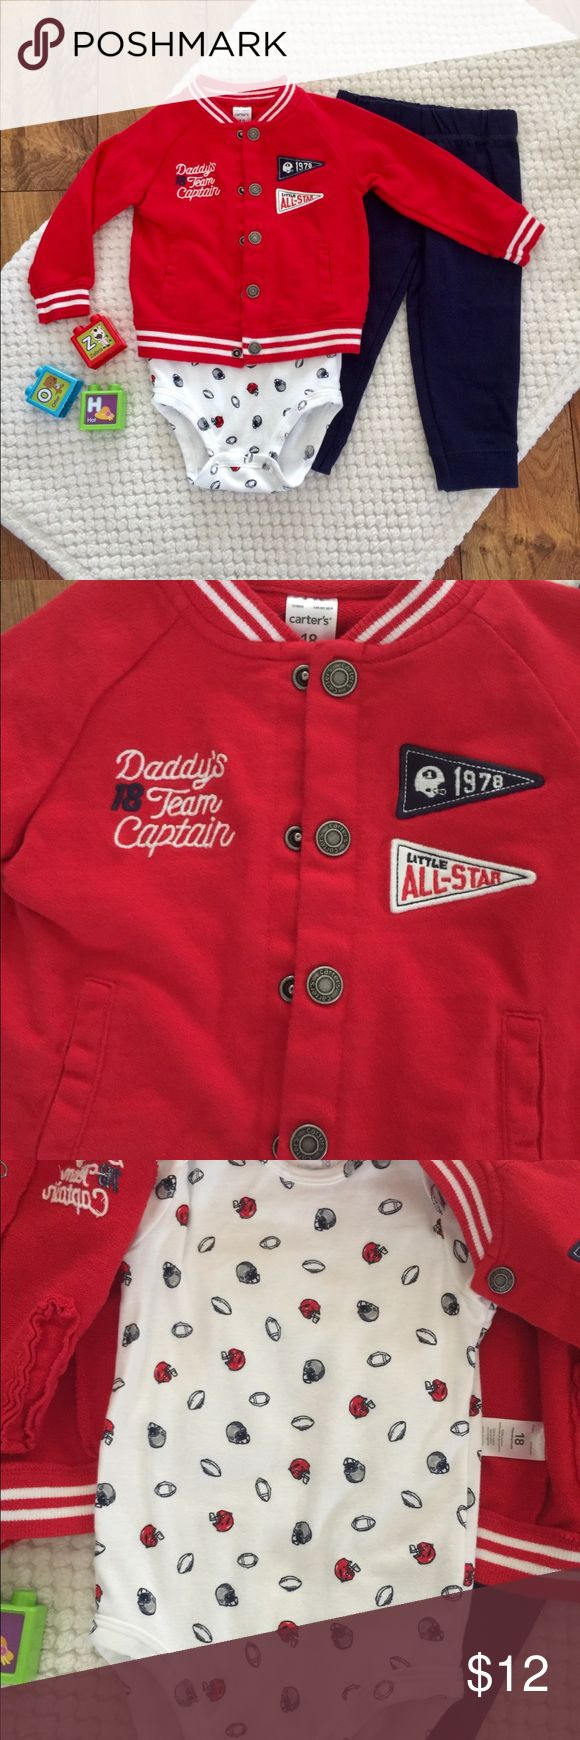 CARTER'S Baby Boy Football Jacket Outfit CARTER'S Baby Boy Football Jacket Outfit. Excellent condition baby boy outfit. Daddy's team captain. Football onesie, jacket, and bottoms. Size 18M. Bundle your likes for a private offer Carter's Matching Sets